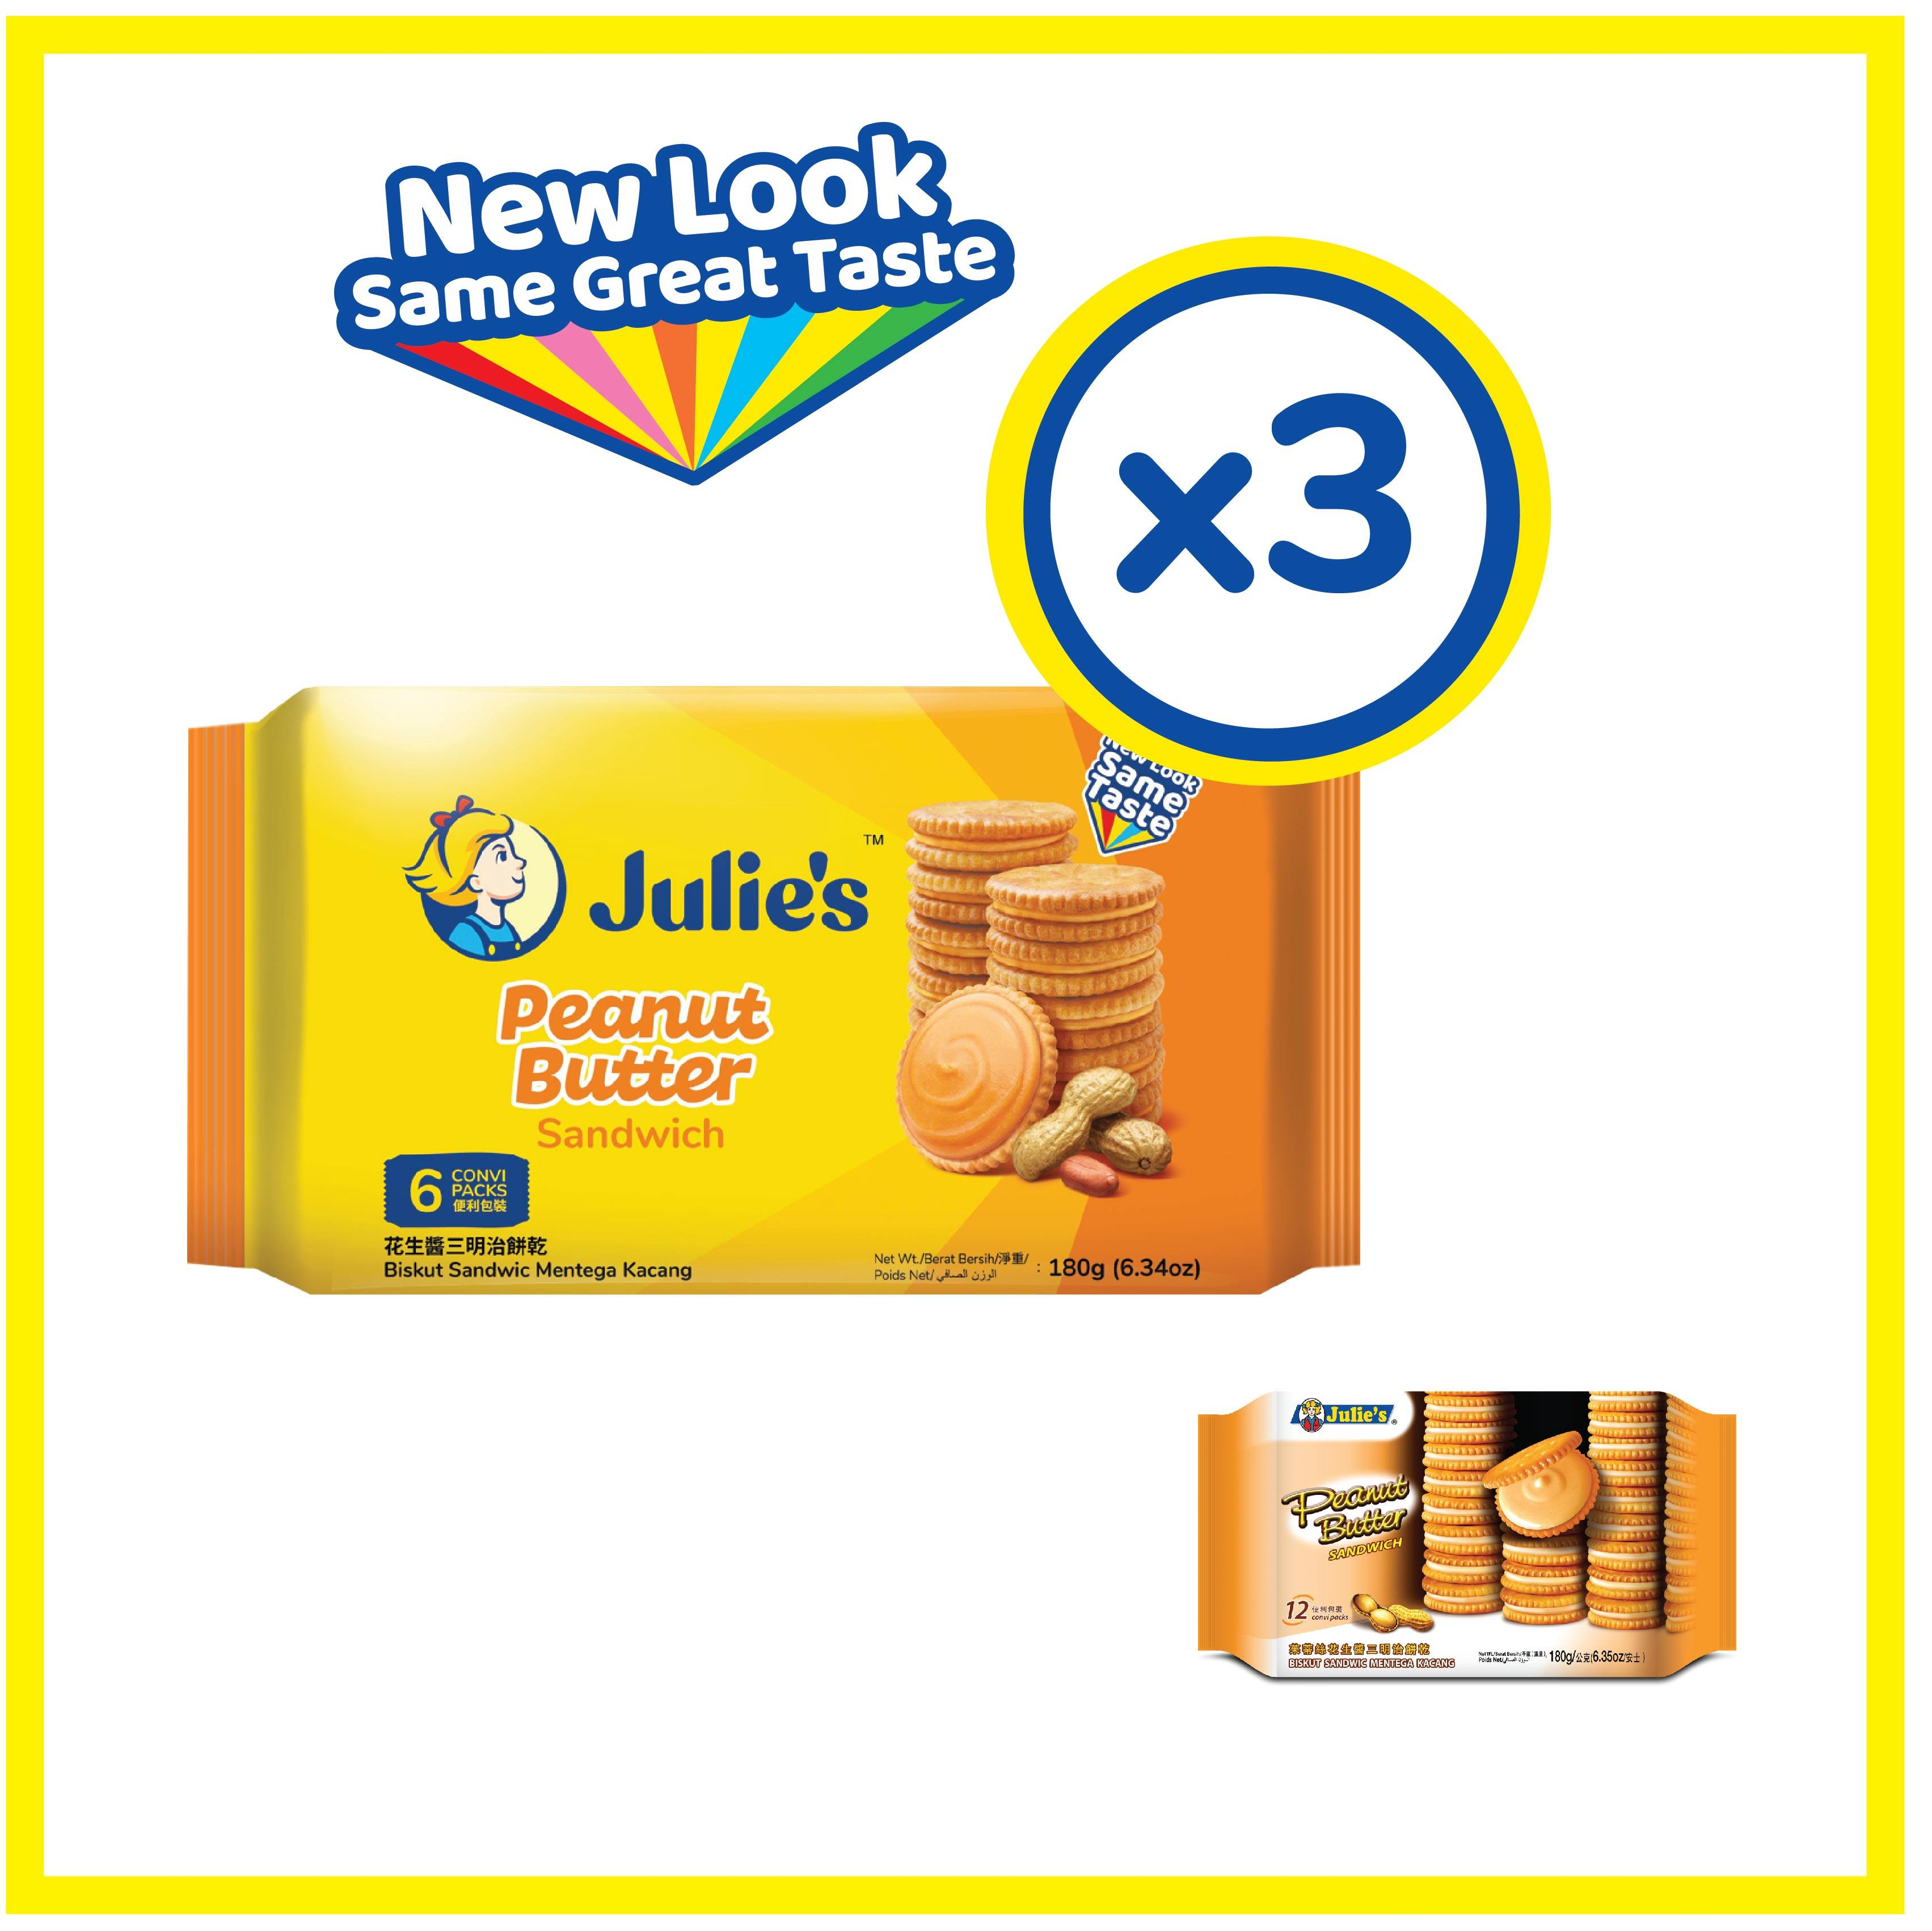 Julie's Peanut Butter Sandwich 180g x 3 Pack